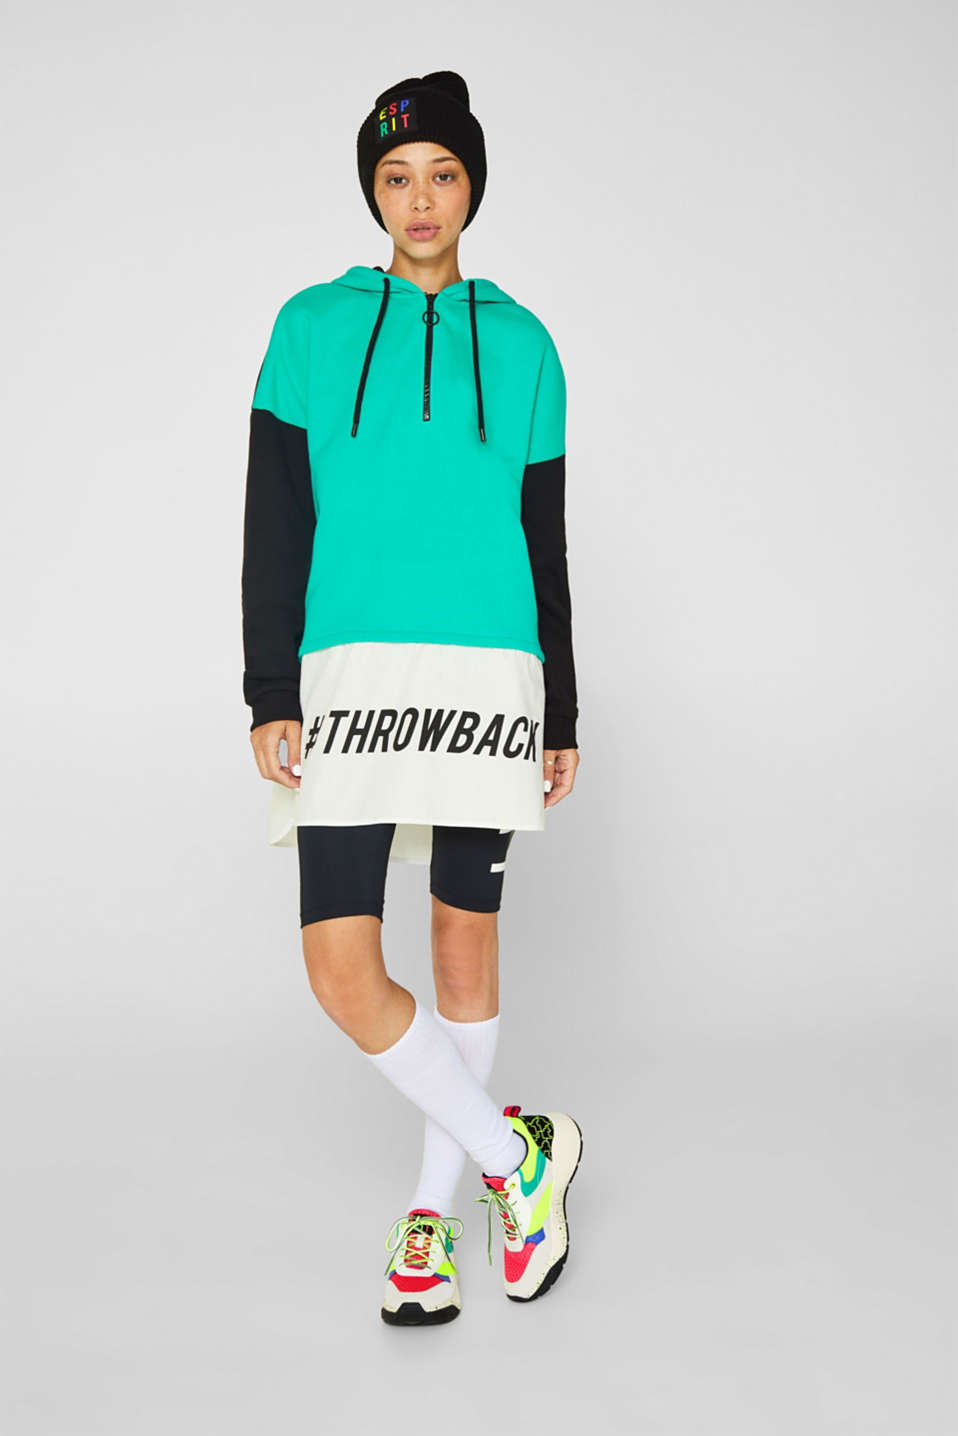 Esprit - #throwback Sweat-shirt color block, 100 % coton